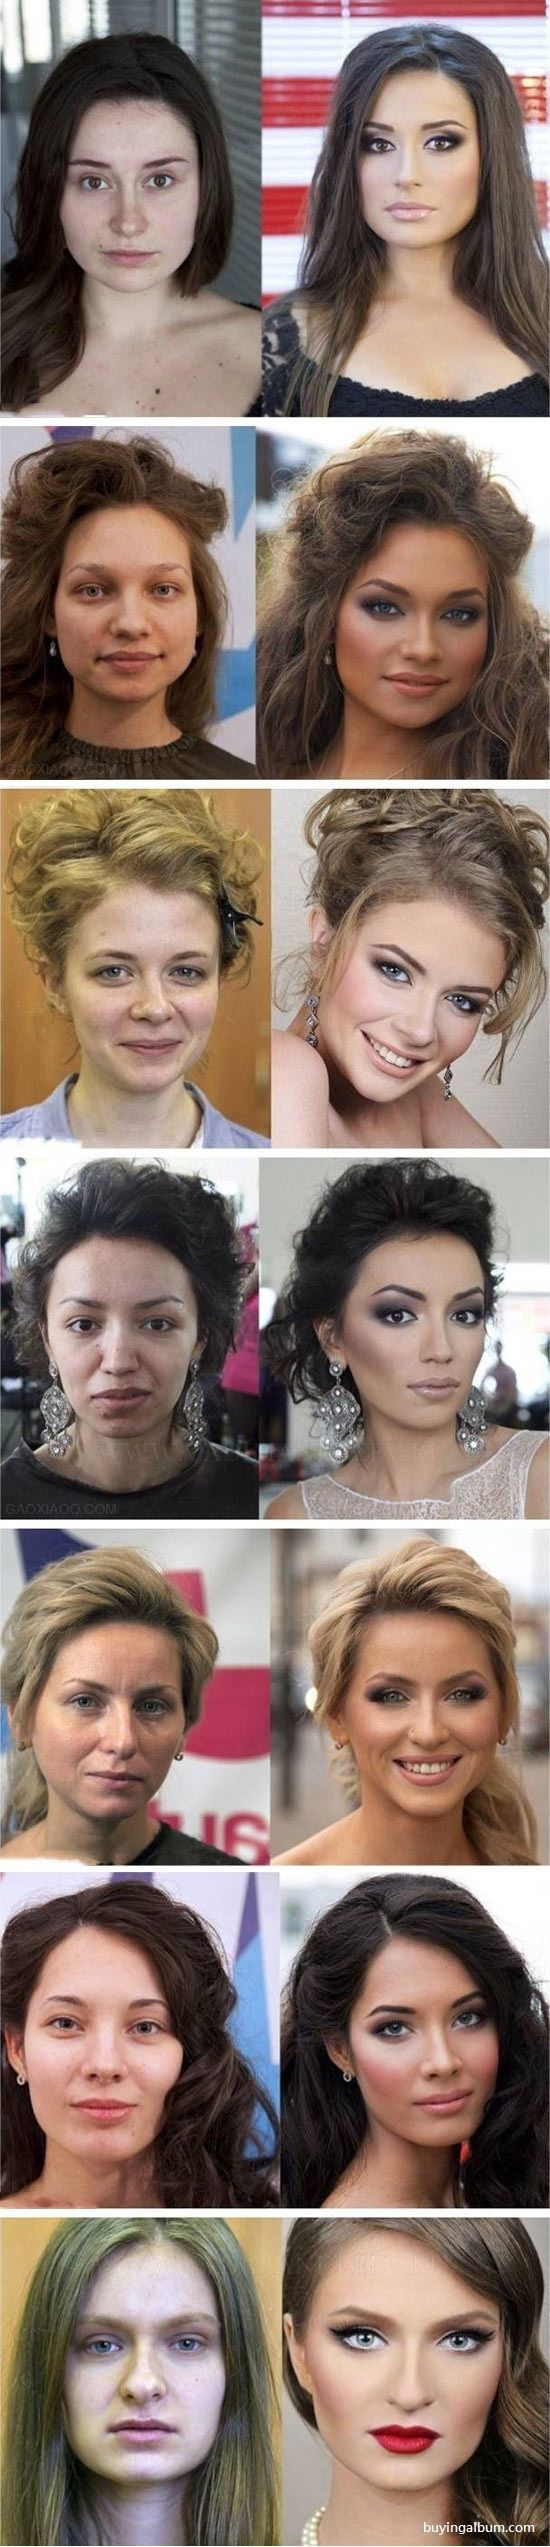 Lady: before and after